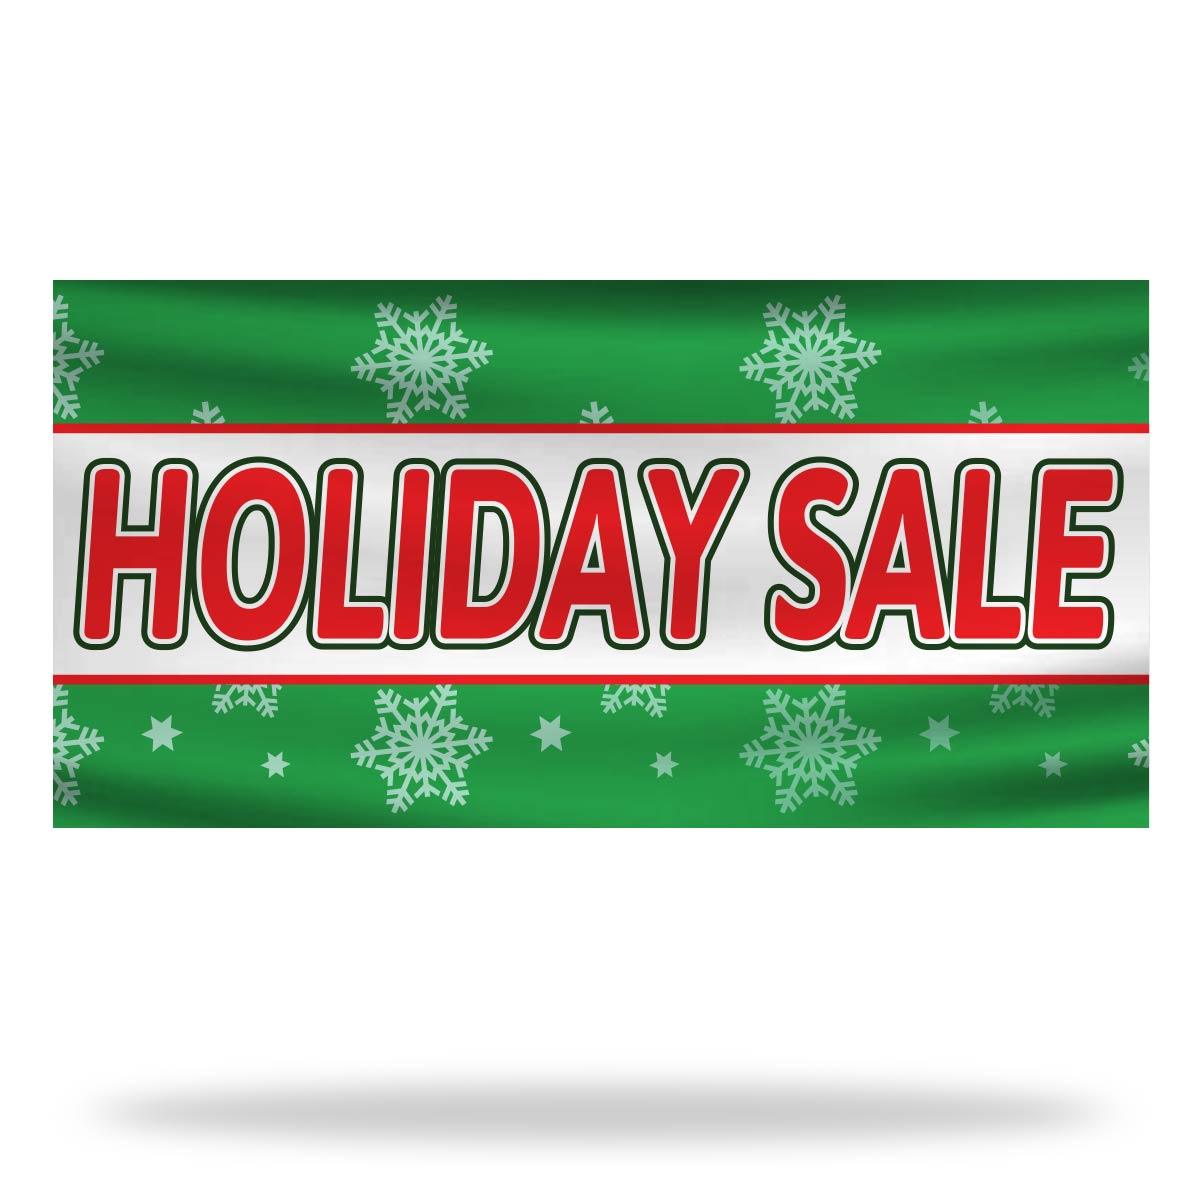 Holiday Sale Flags & Banners Design 03